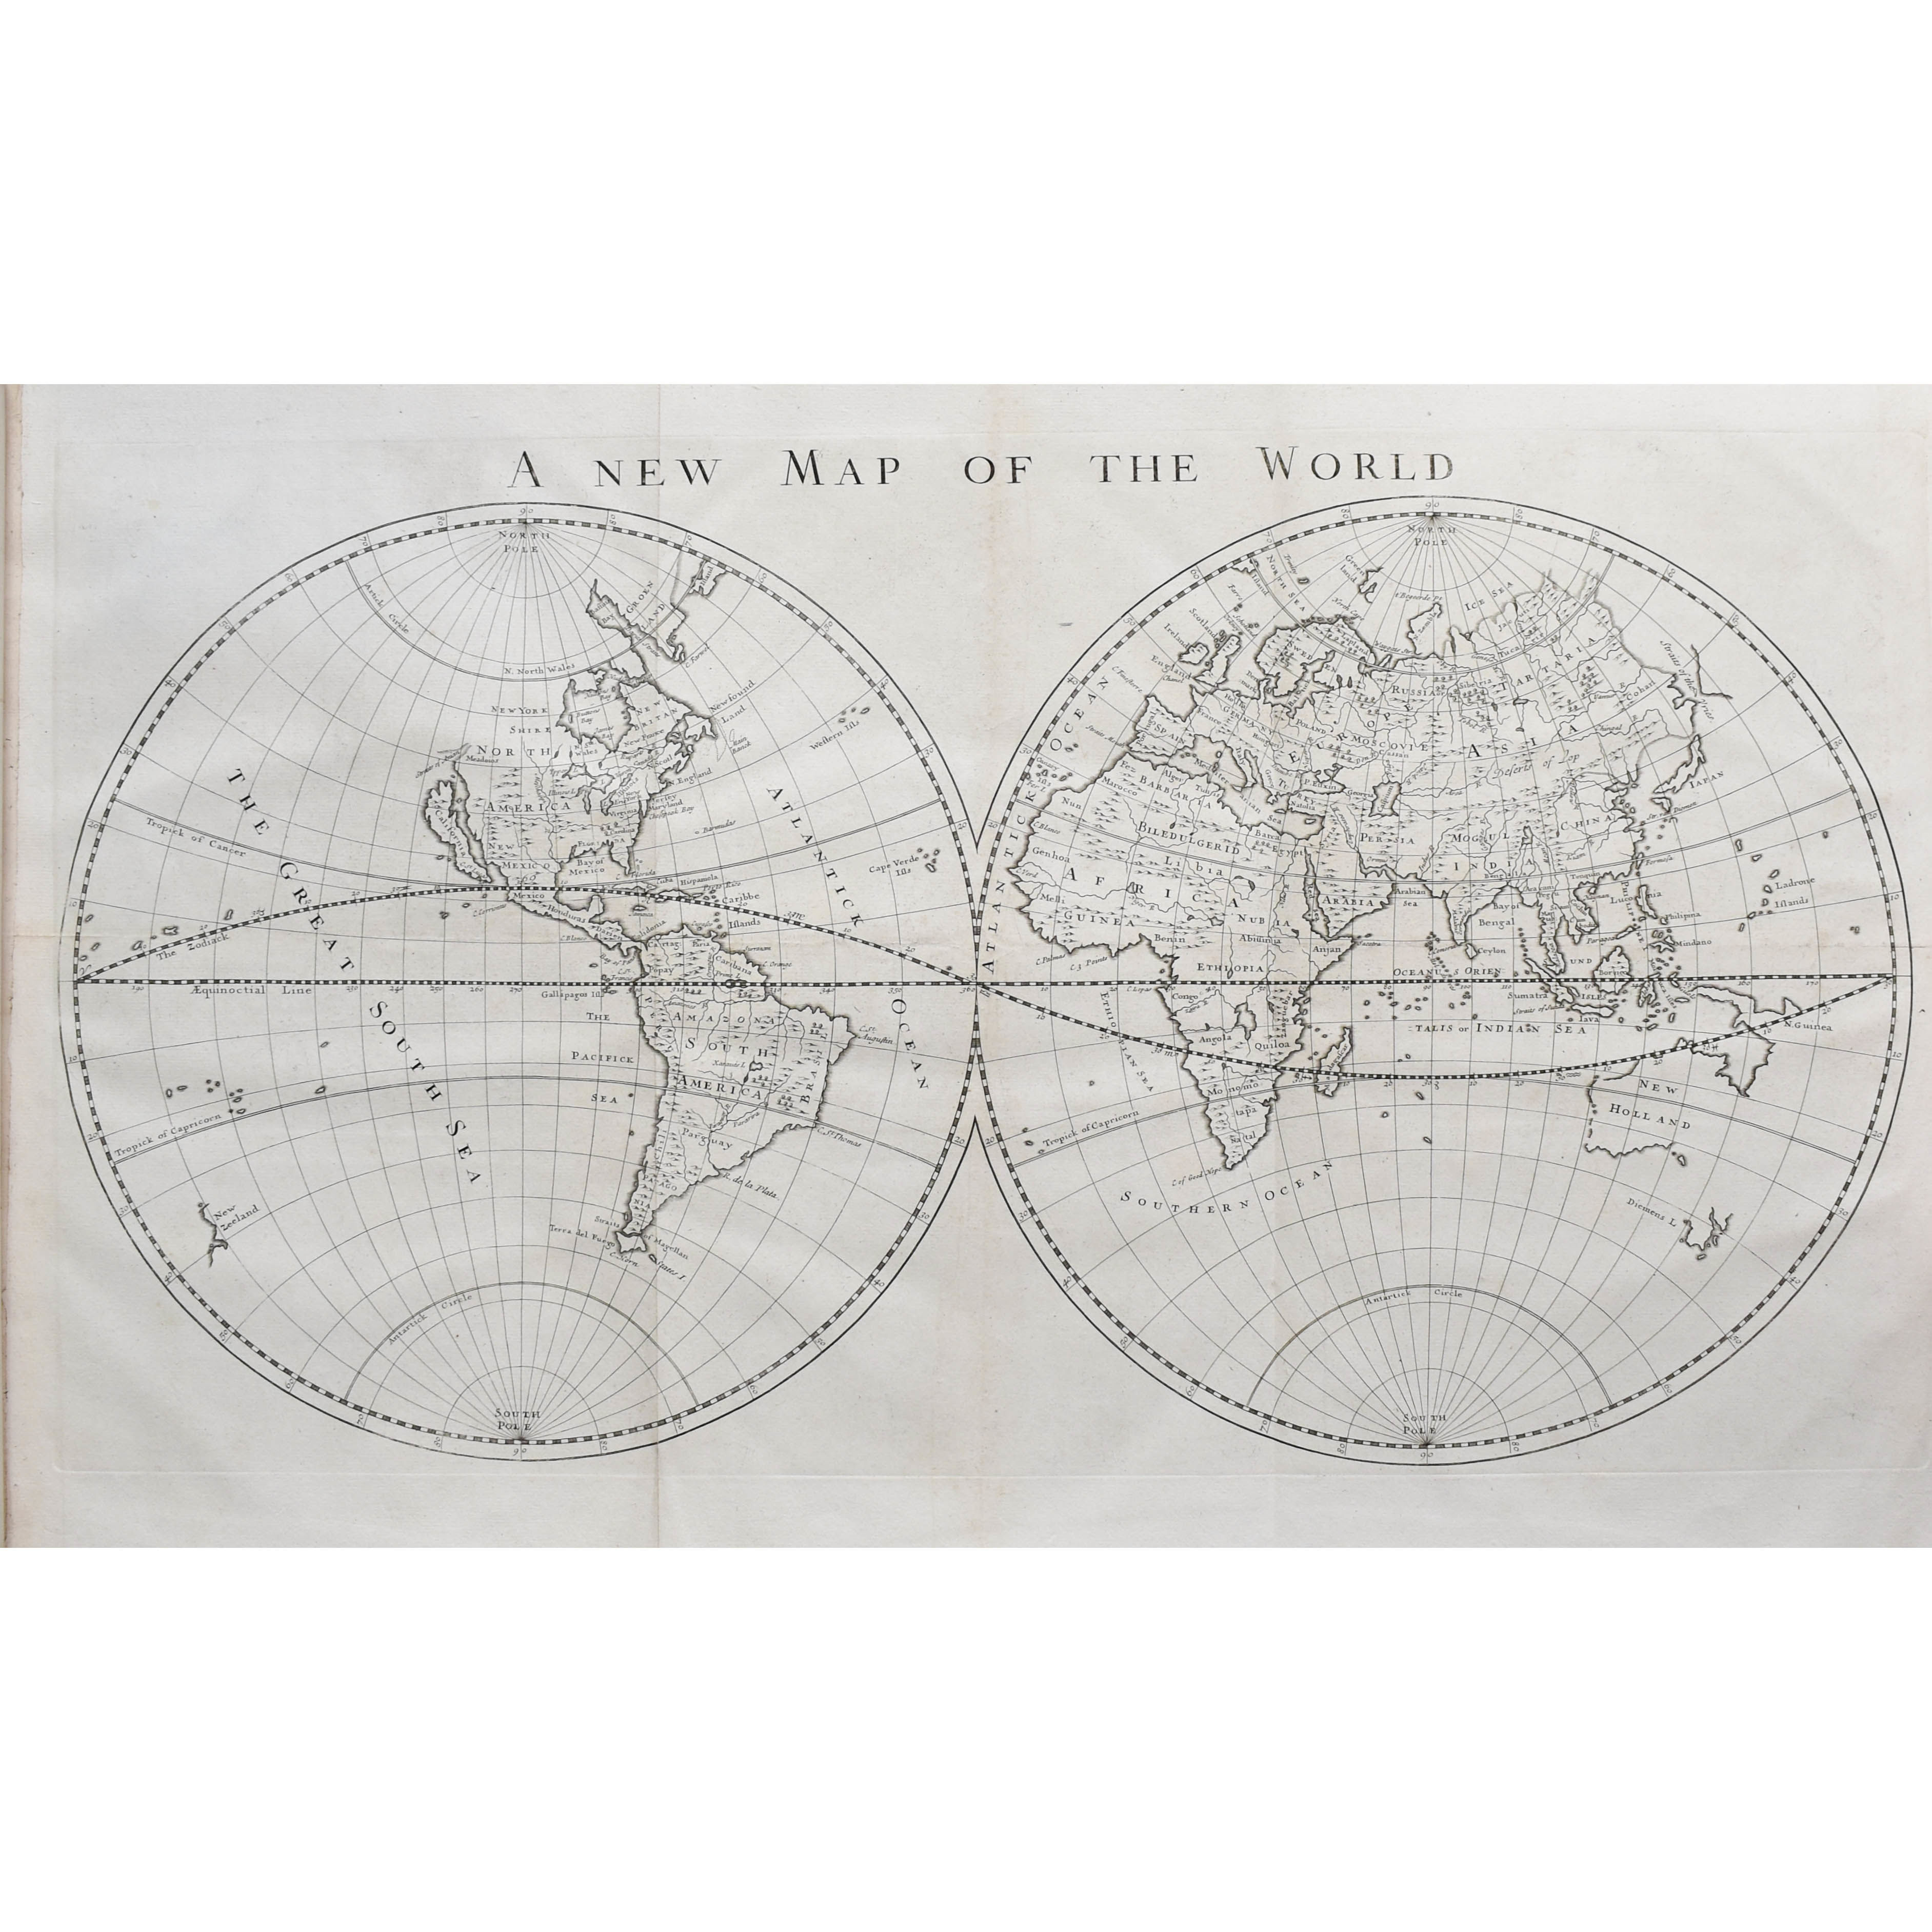 Cosmography, in Four Books. Containing the Chorography and History of the Whole World, and all the Principal Kingdoms, Provinces, Seas, and Isles thereof..., (photo 2)